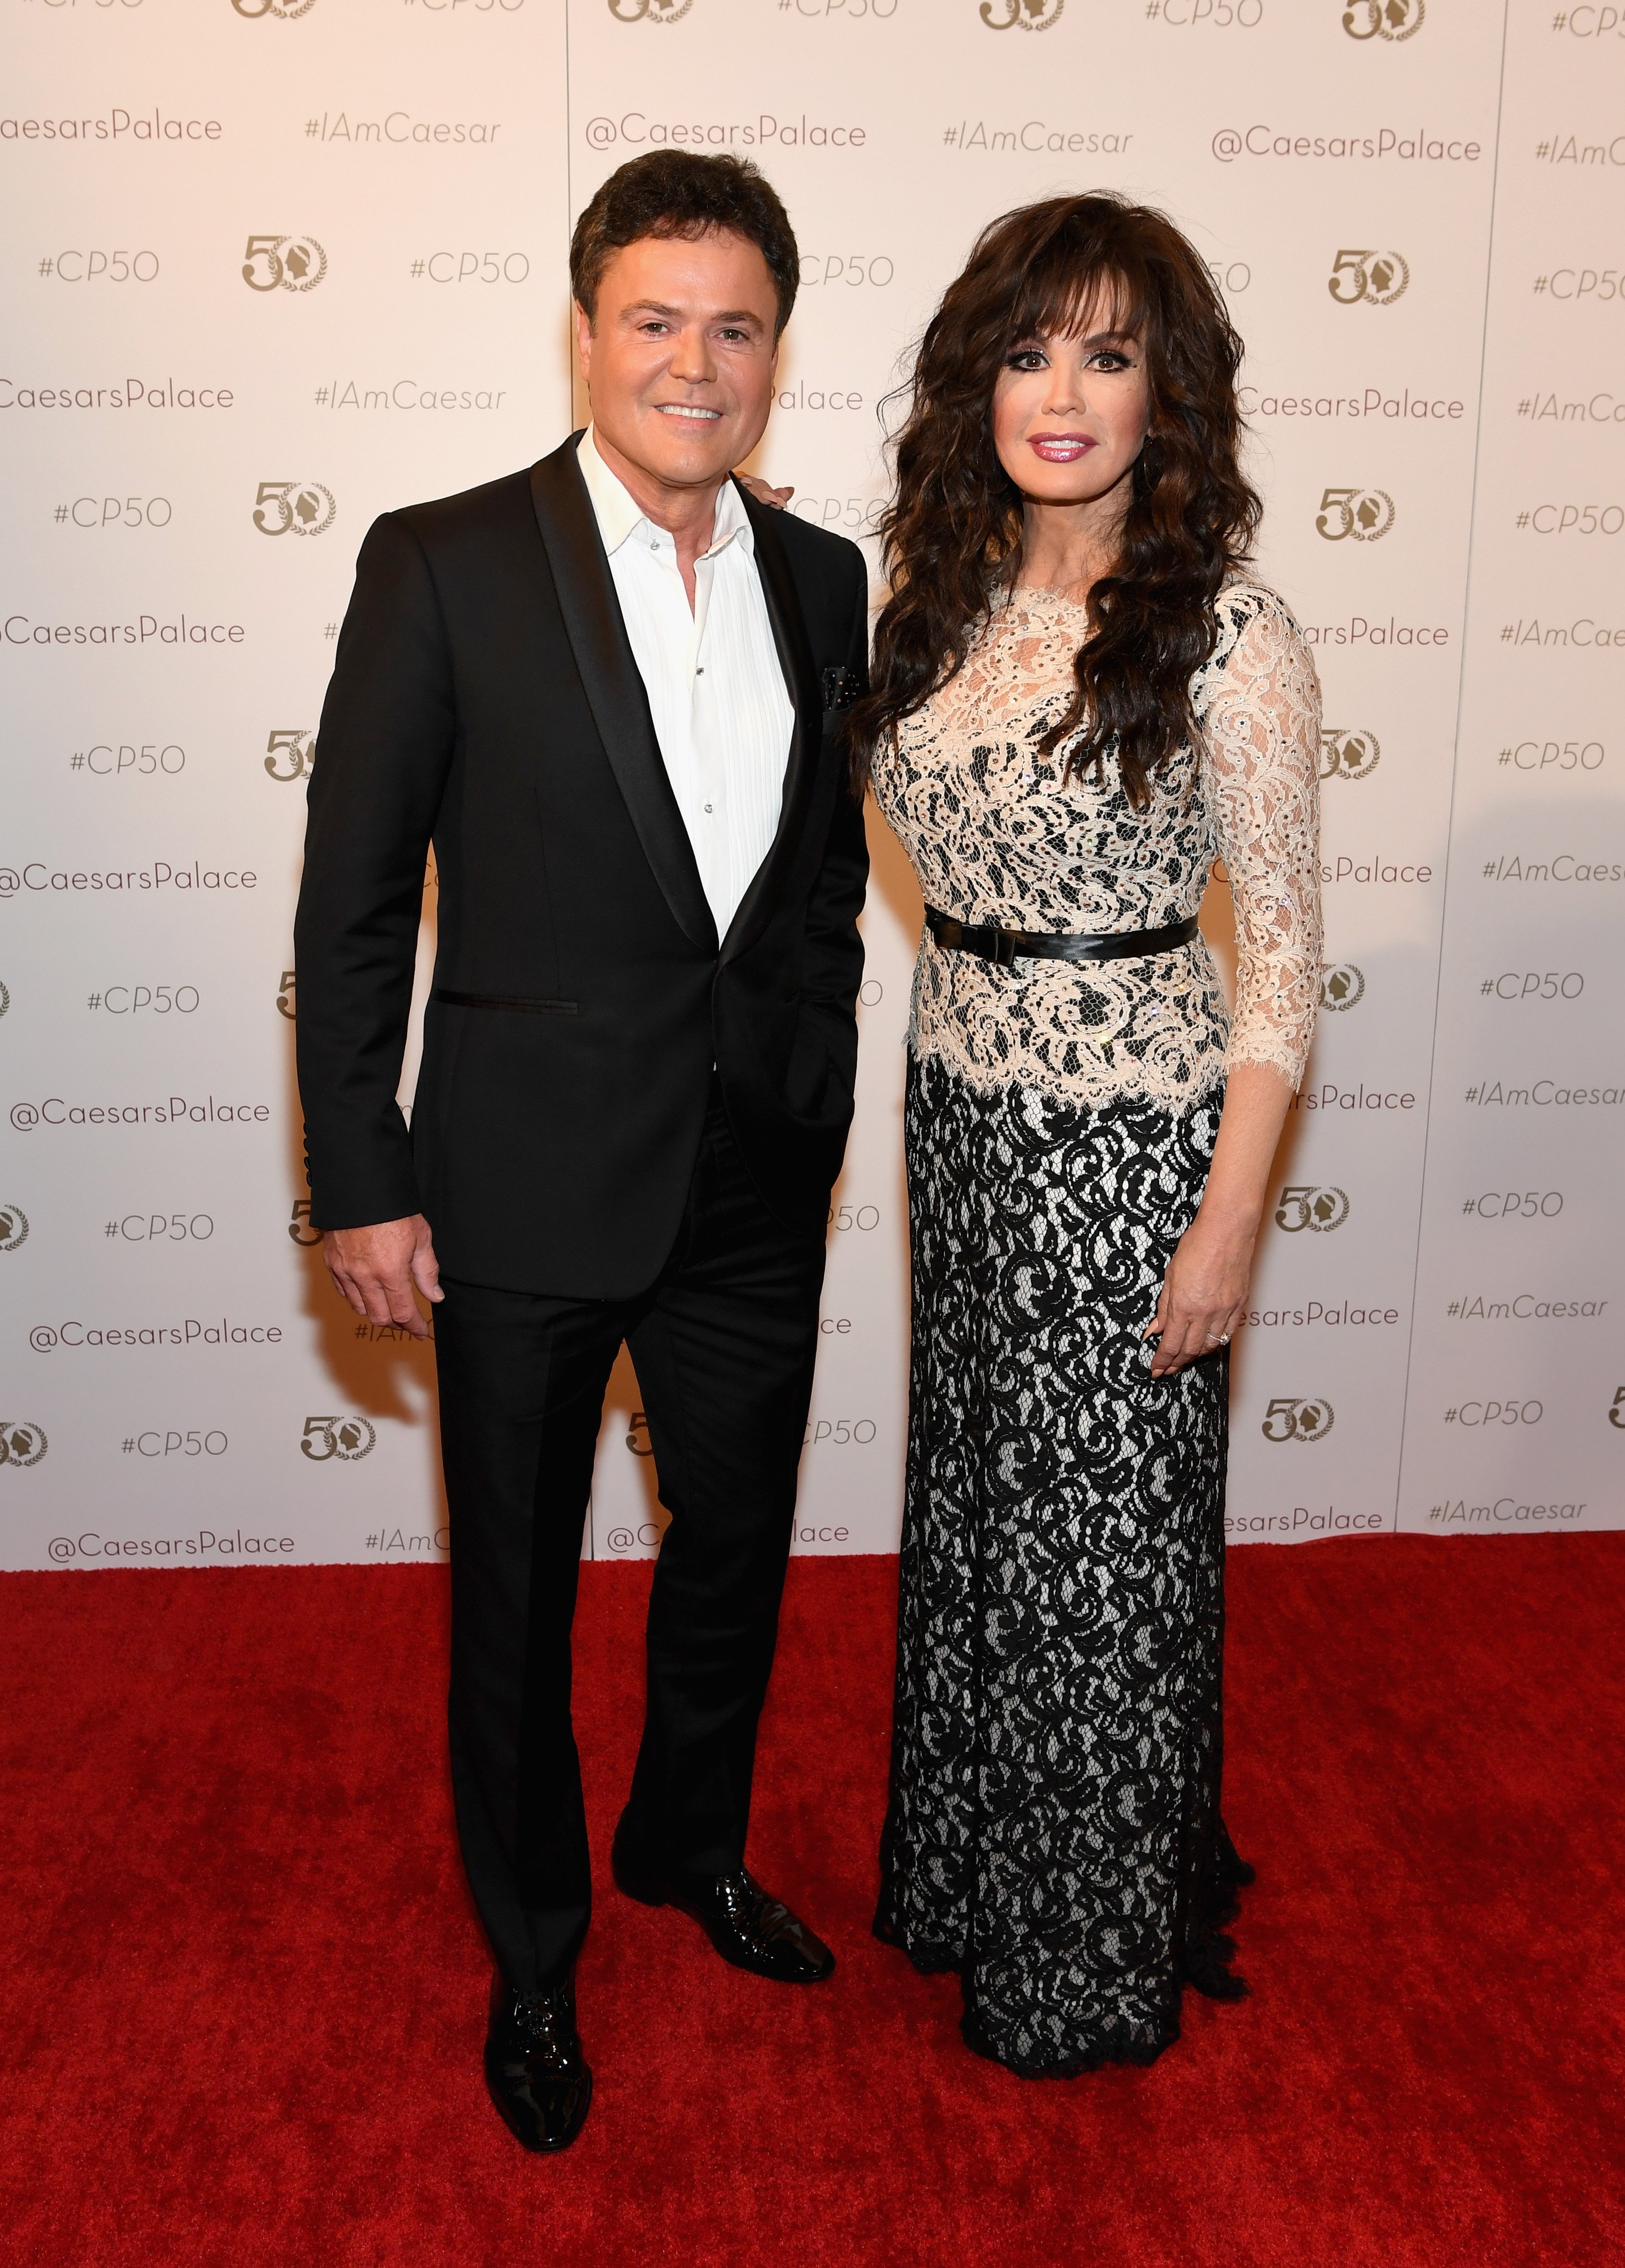 Donny Osmond and Marie Osmond at Caesars Palace on August 6, 2016, in Las Vegas, Nevada. | Source: Getty Images.